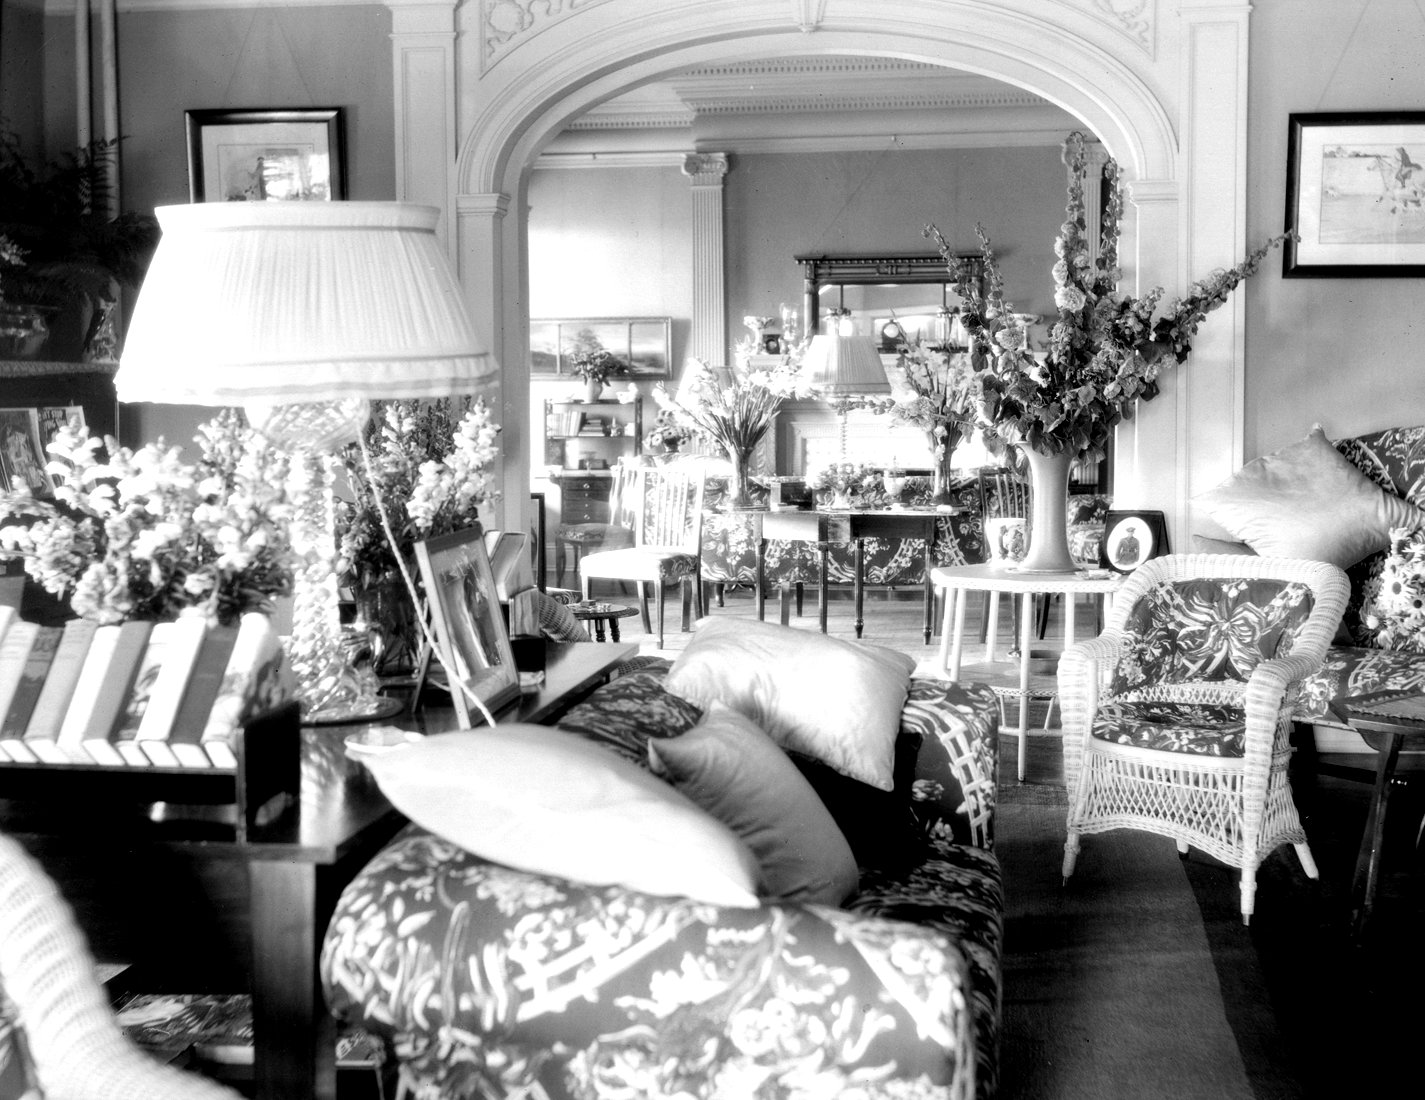 The bright living room of a summer home decorated with bouquets of flowers.